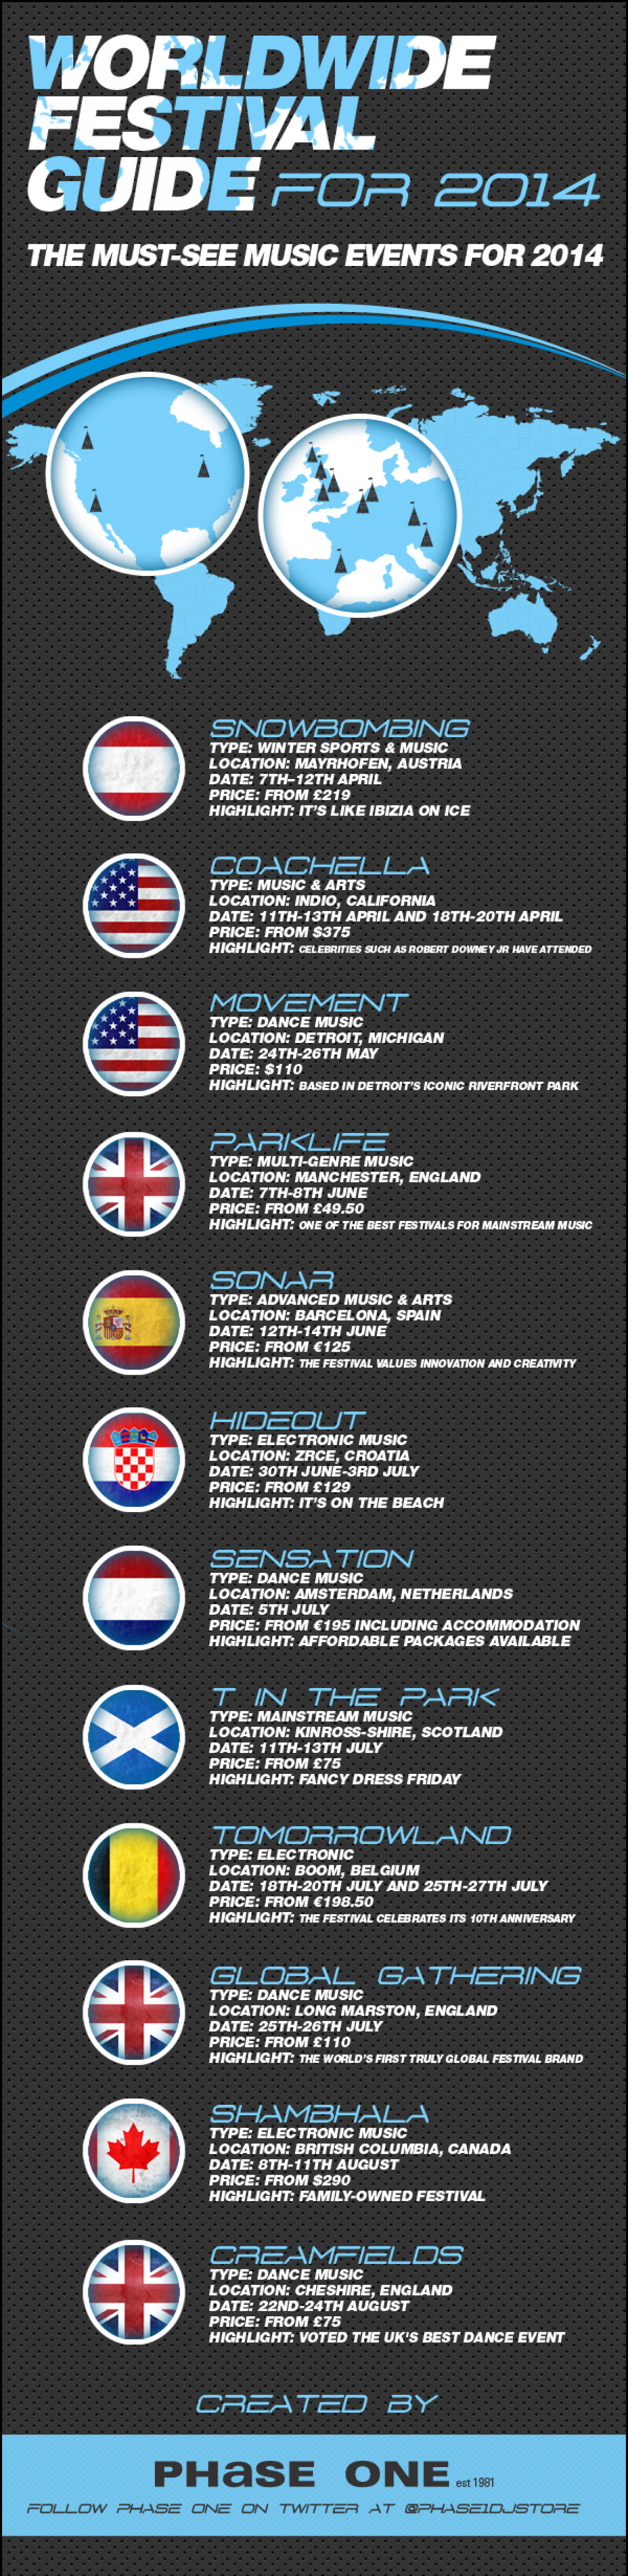 Worldwide Festival Guide for 2014  Infographic